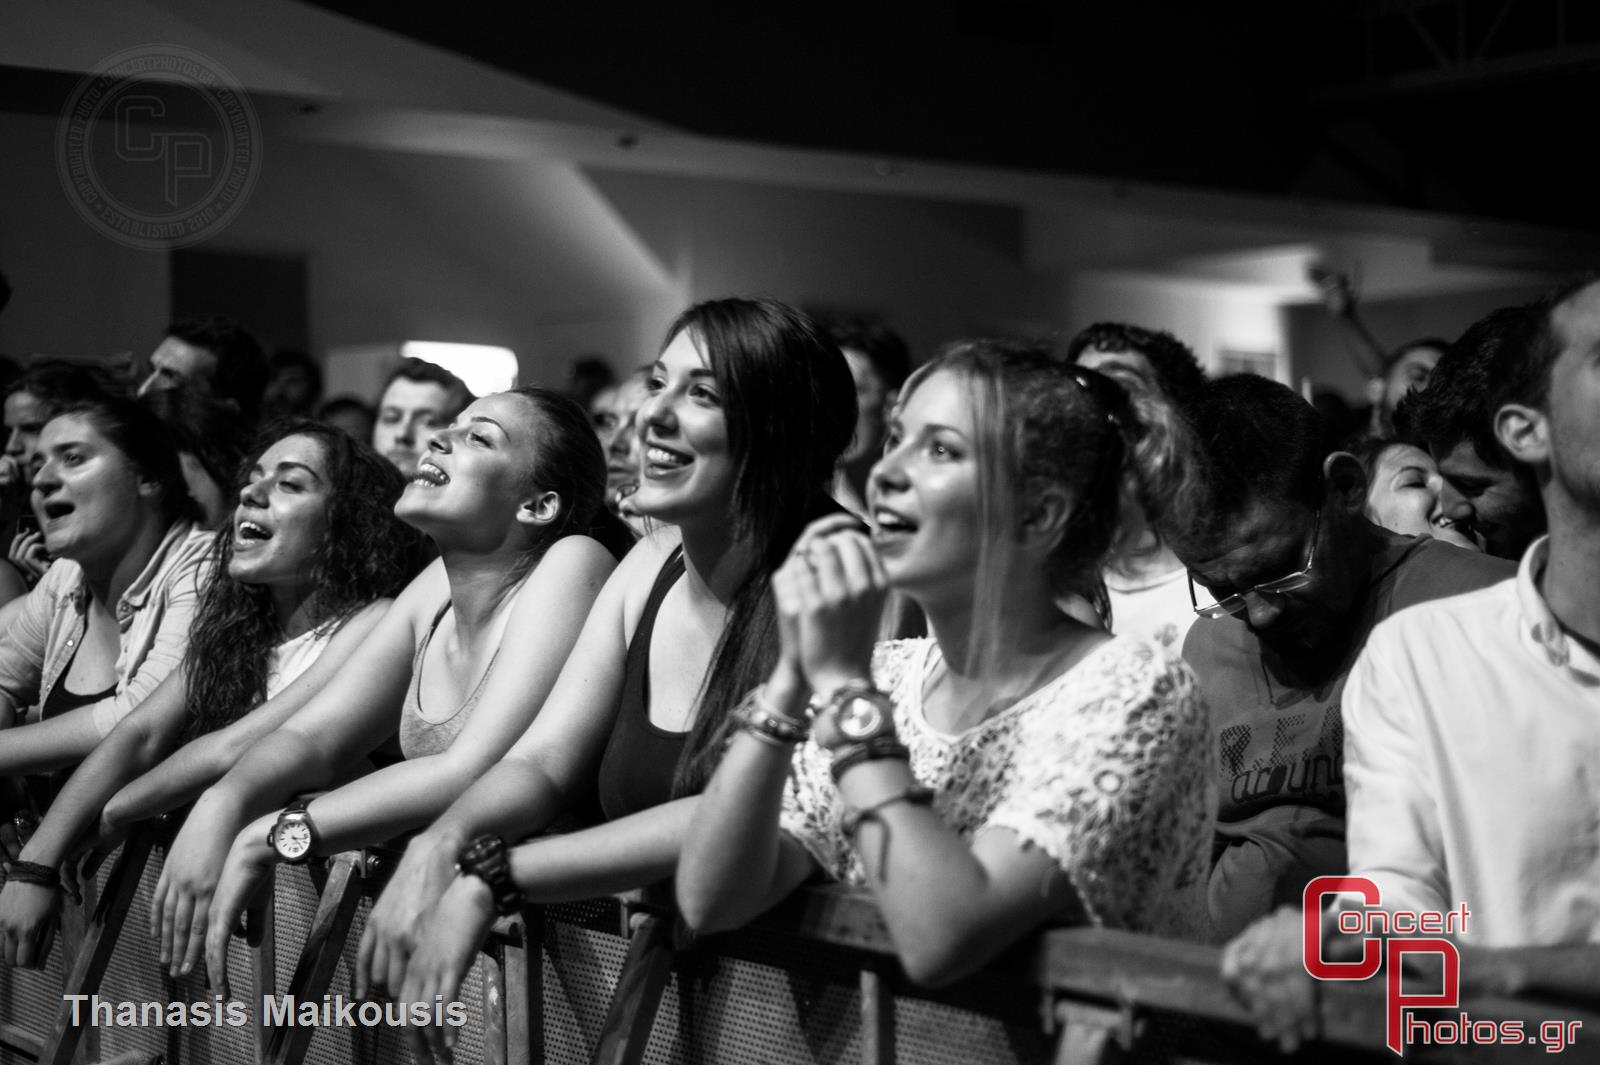 Παύλος Παυλίδης-Pavlidis-stage-volume1 photographer: Thanasis Maikousis - concertphotos_20140611_22_59_54